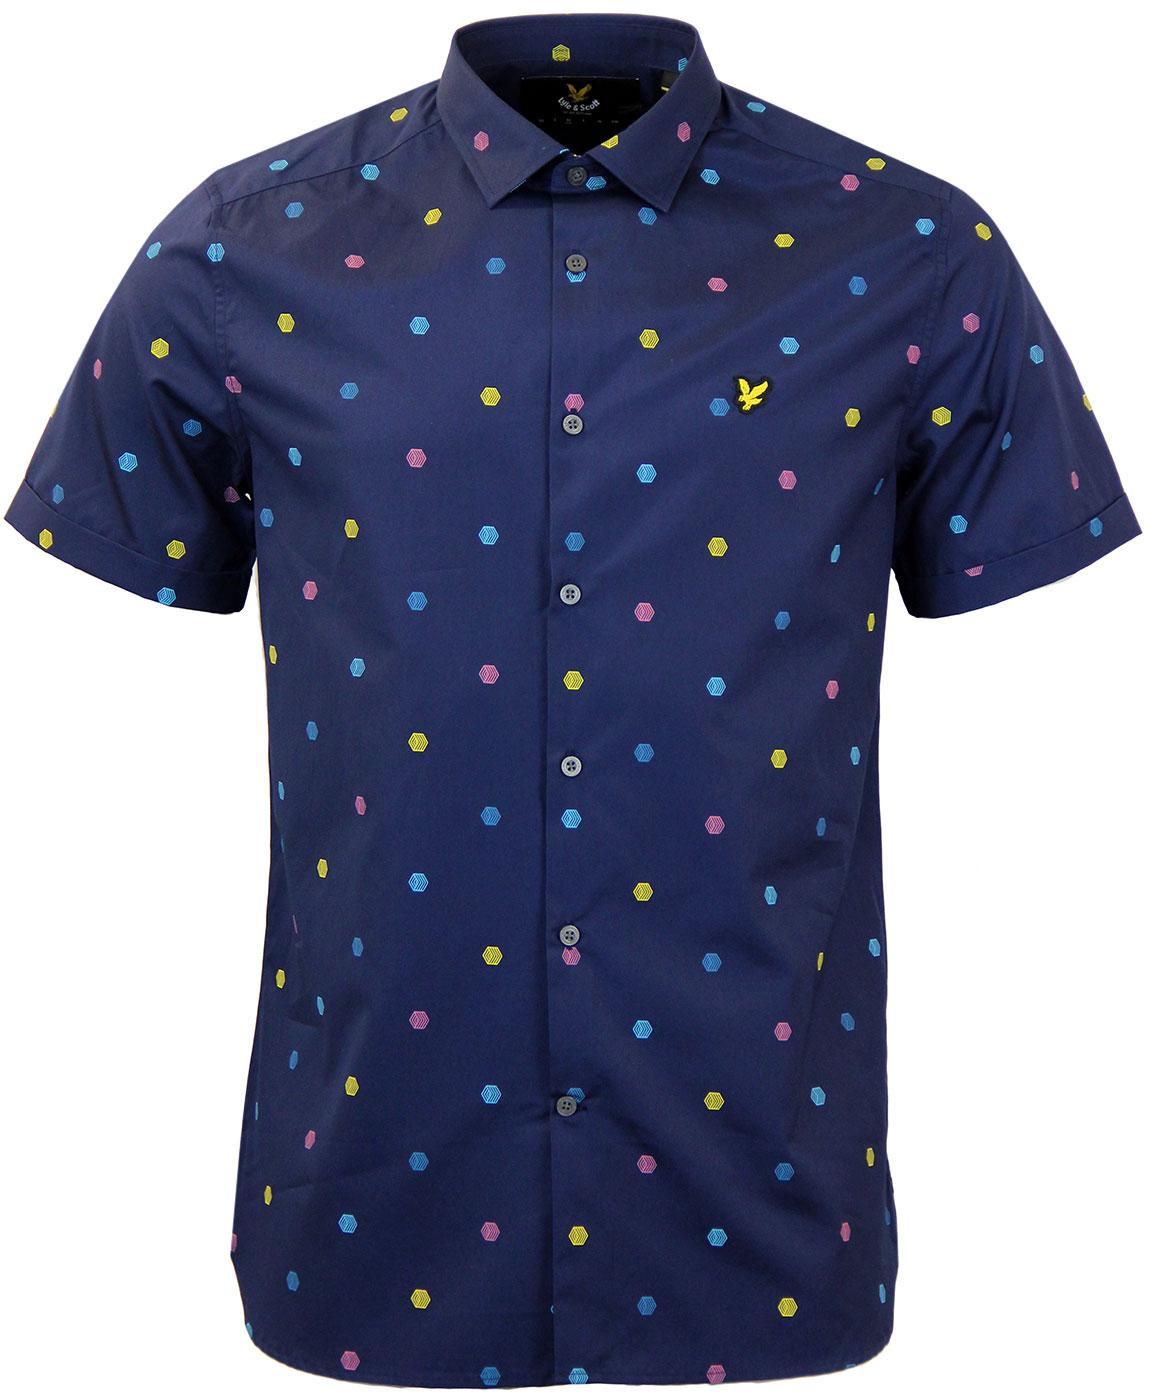 LYLE & SCOTT Retro 60s Micro Chevron Print Shirt